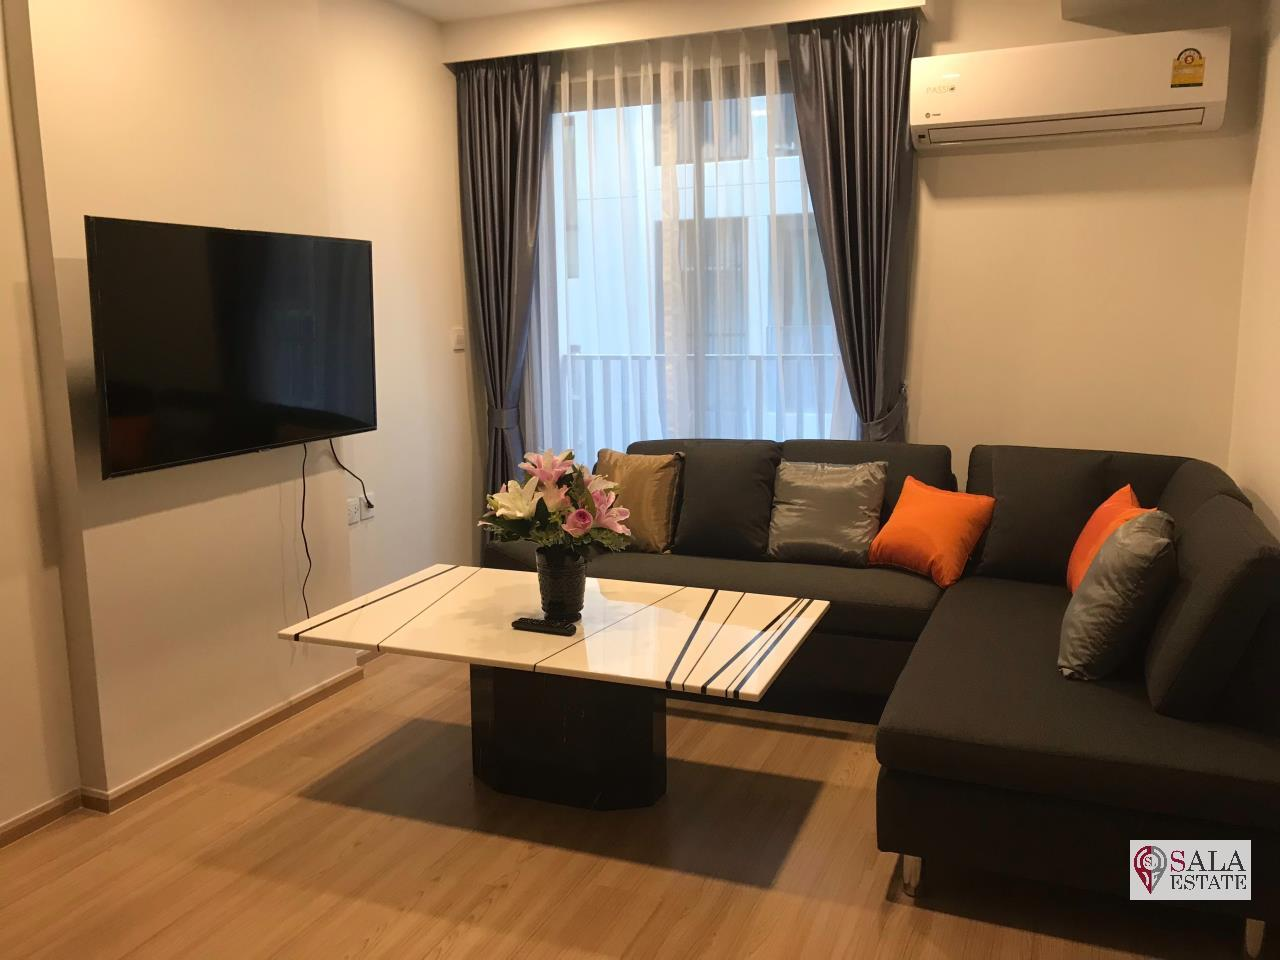 SALA ESTATE Agency's MAESTRO 07 VICTORY MONUMENT – BTS VICTORY MONUMENT, 2 BEDROOM 1 BATHROOM, FULLY FURNISHED, CITY VIEW 1